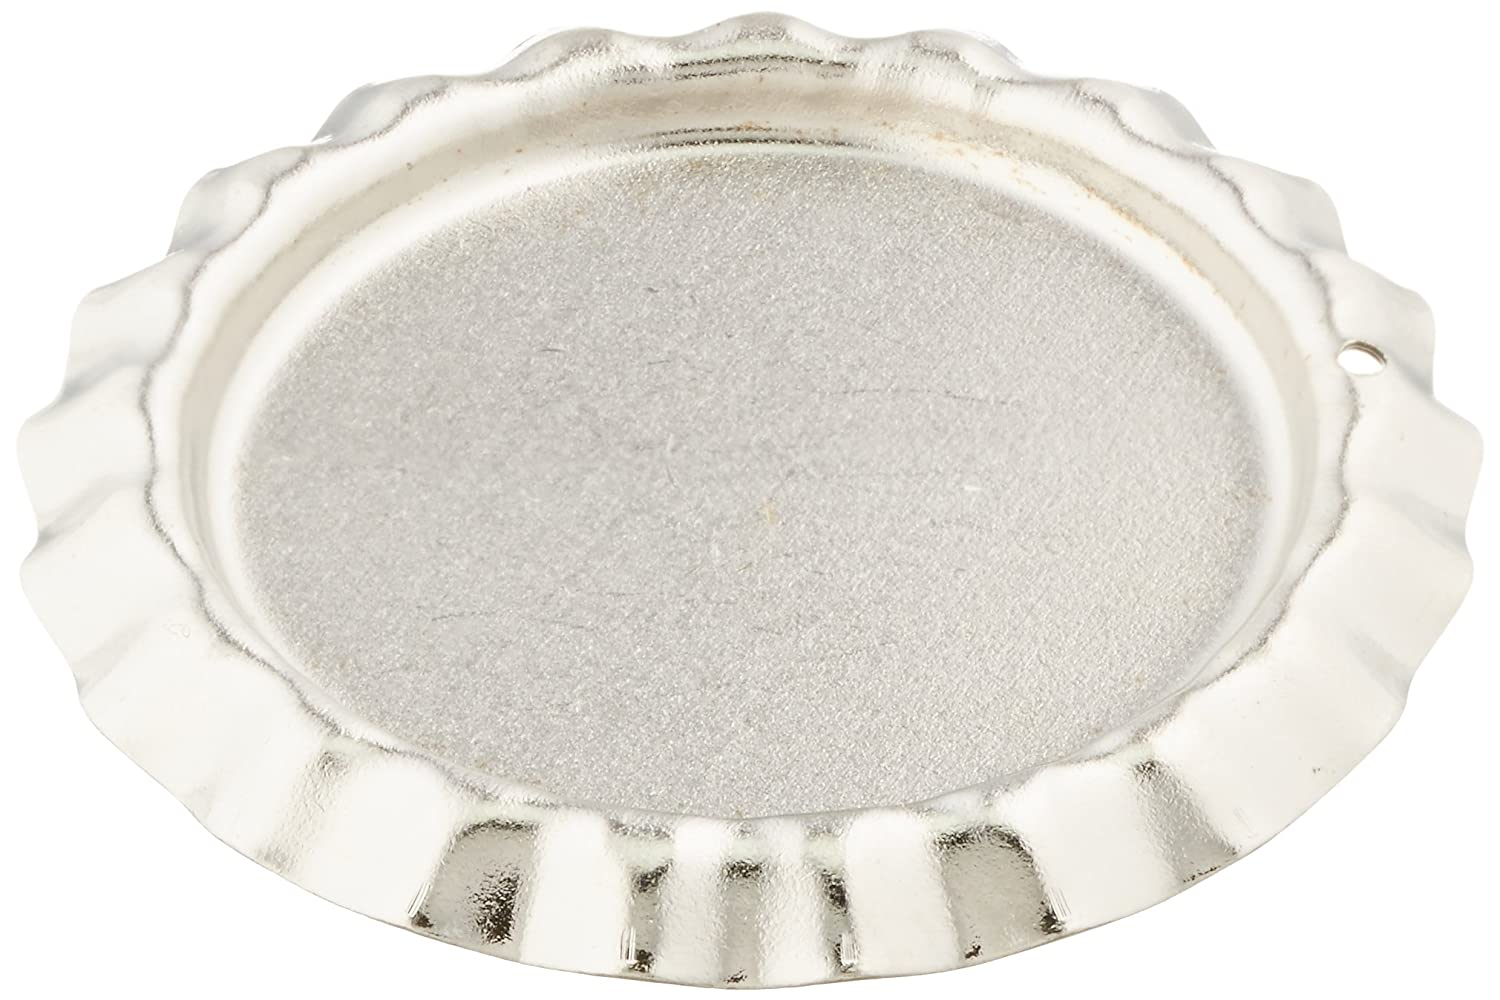 Darice SSR 518 6 Piece Flat with Hole Bottle Caps 1 Inch Silver